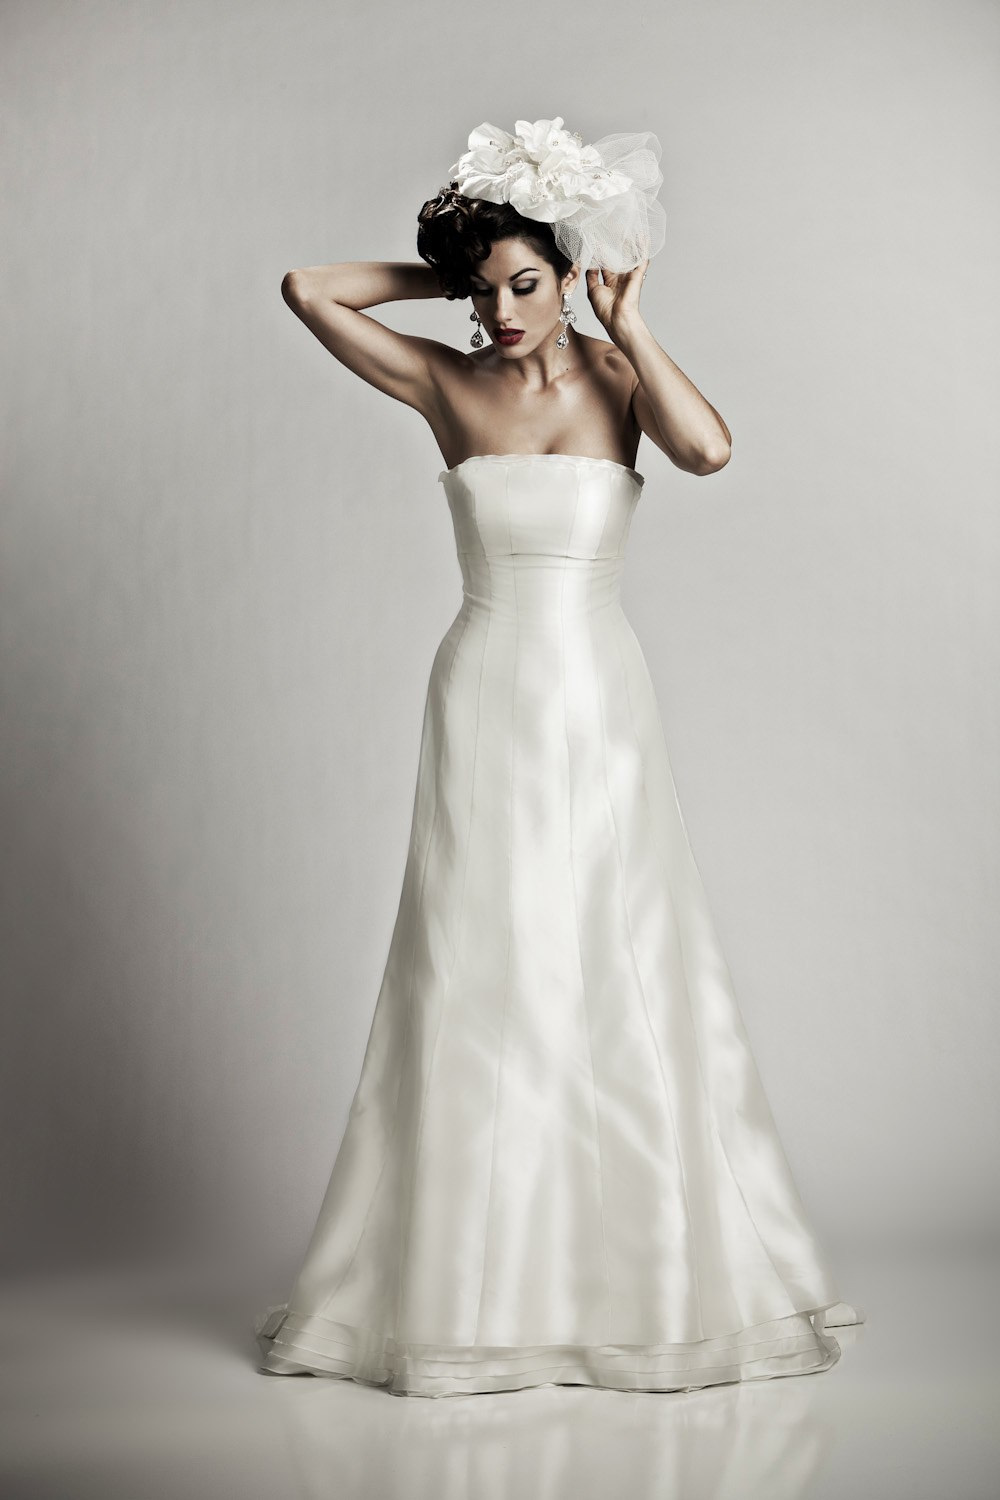 Felicity-wedding-dress-fit-and-flare-ivory-bridal-gowns-strapless-silk.original